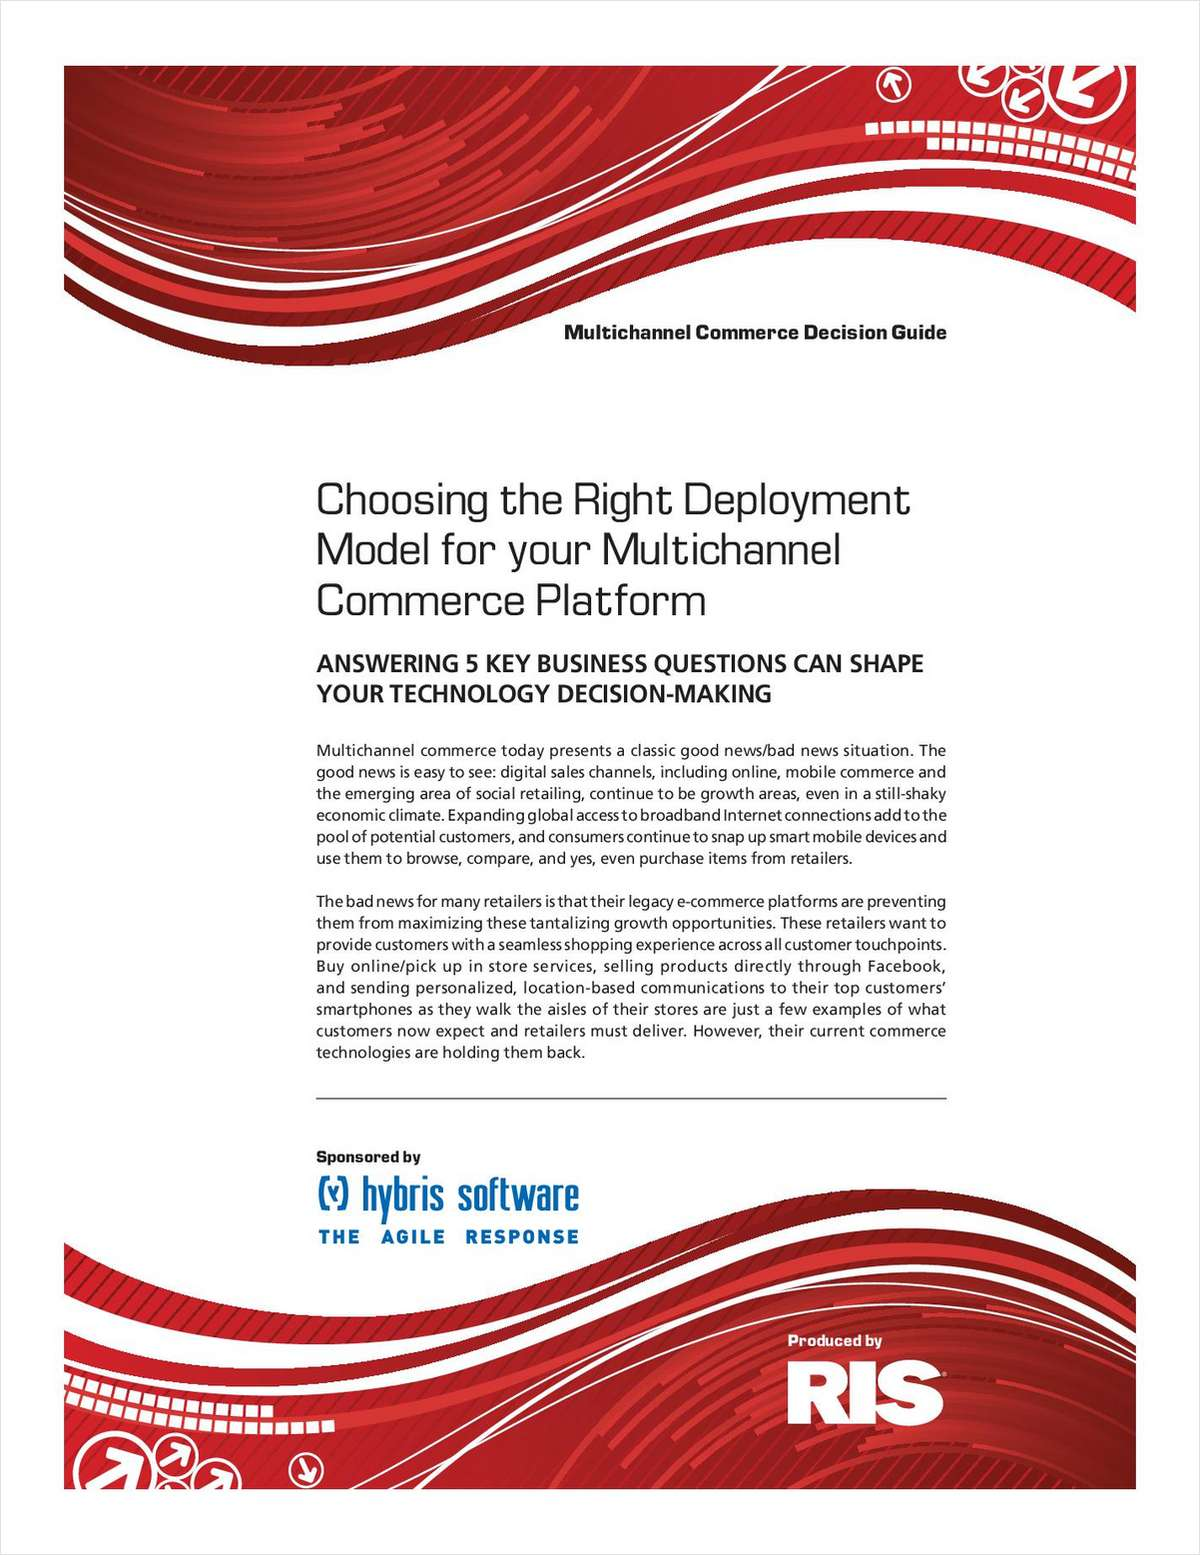 Choosing the Right Deployment Model for your B2C Multichannel Commerce Platform